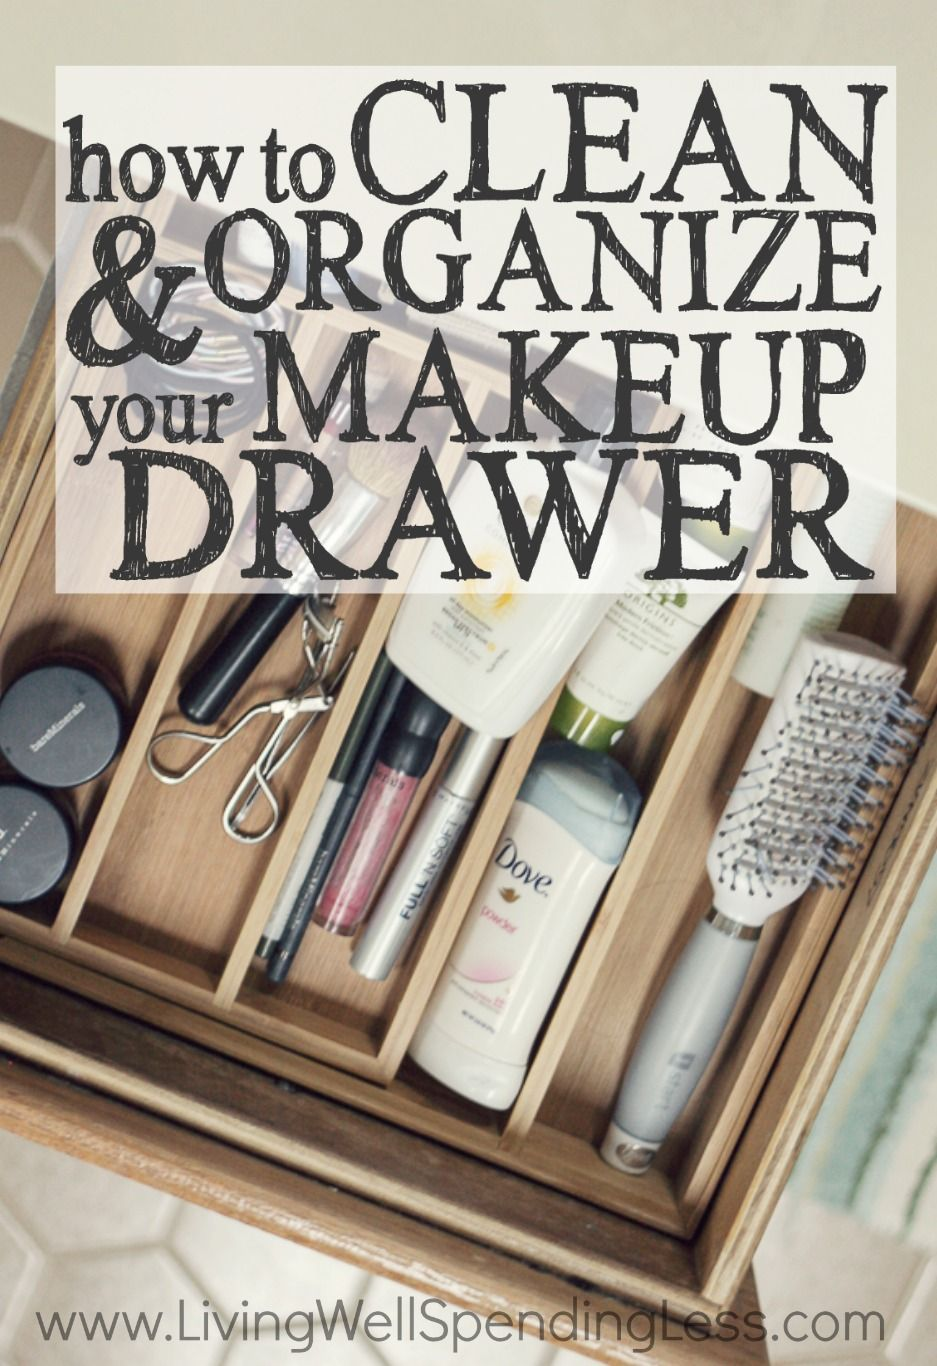 How to Clean & Organize Your Makeup Drawer Bathroom drawers